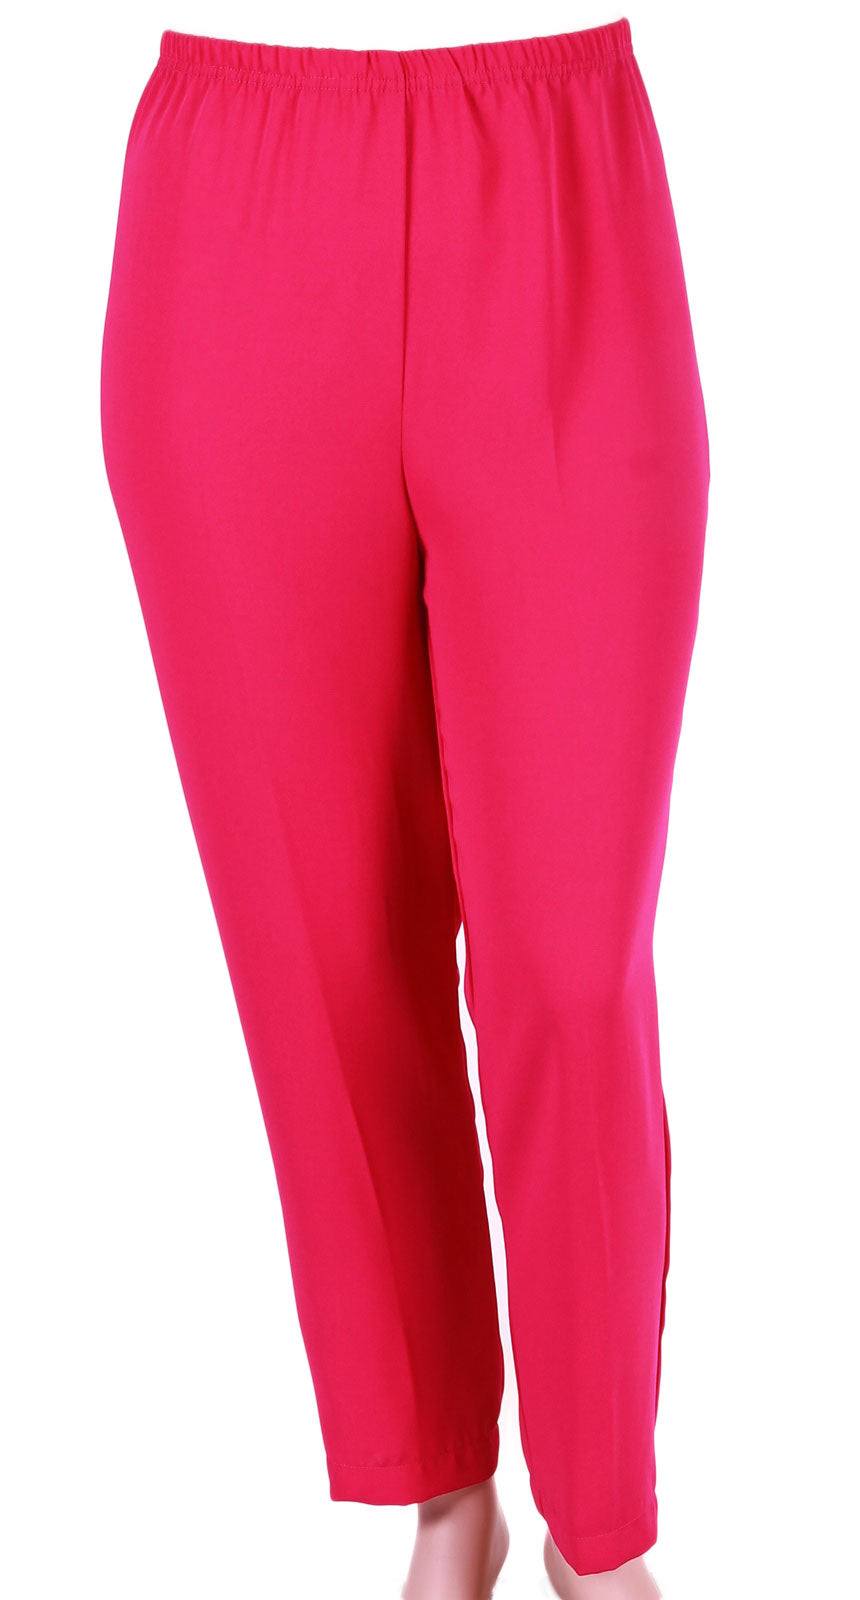 Sybil's Crepe Pant Pink